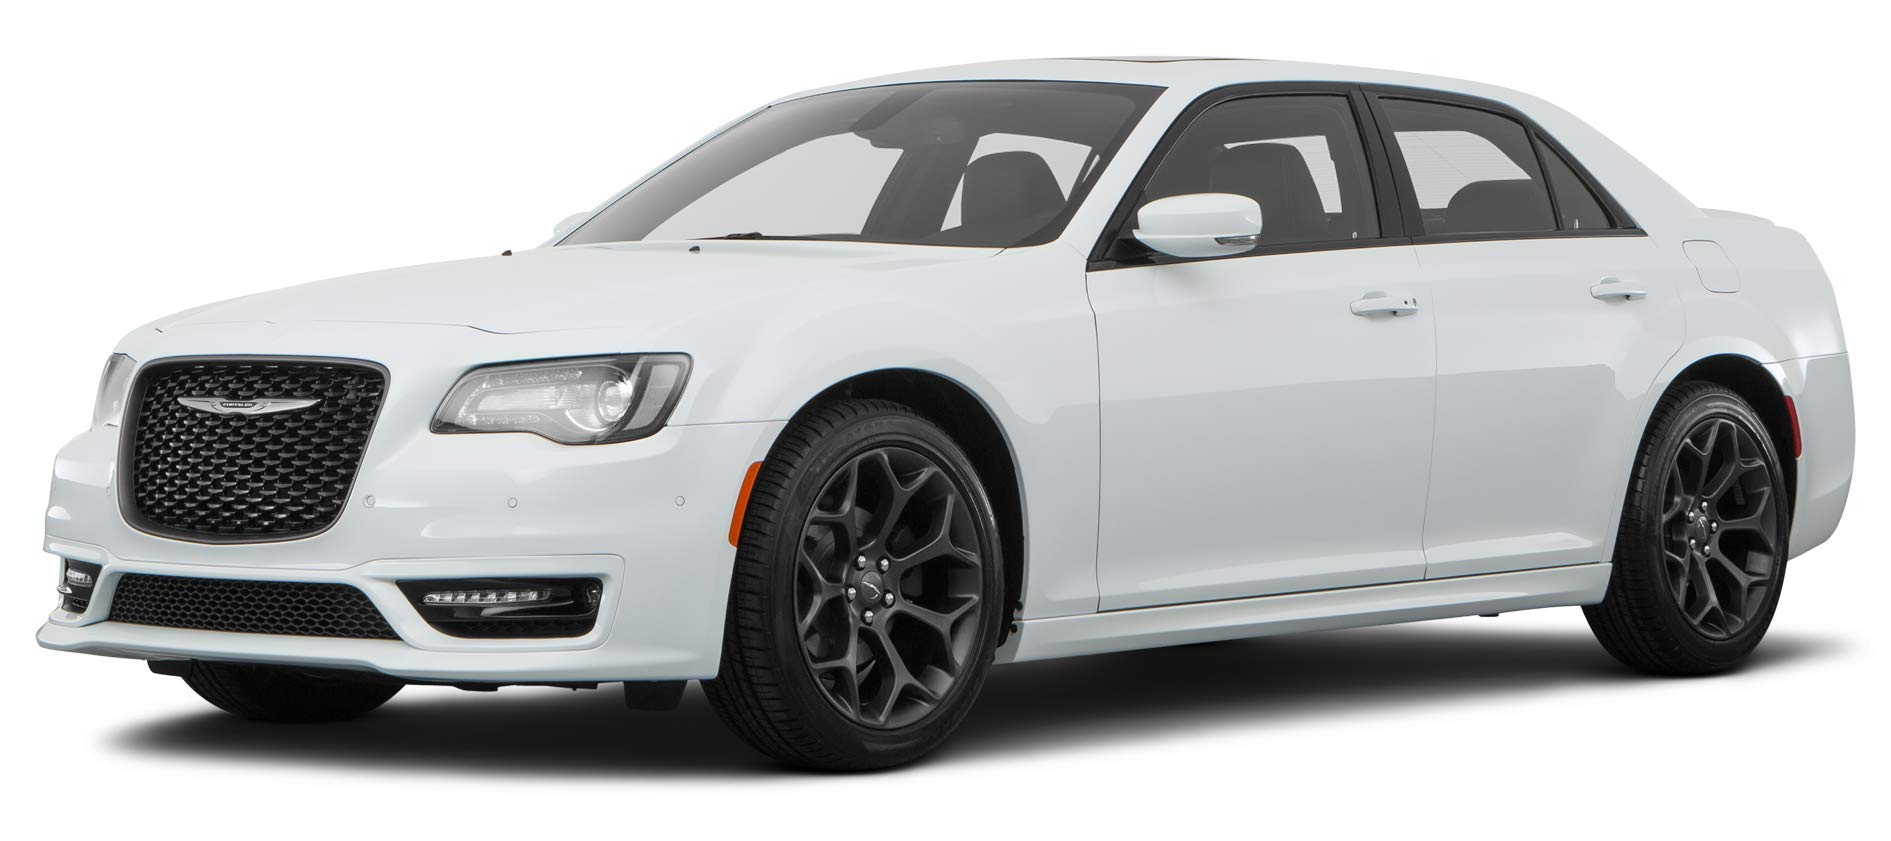 2023 Chrysler 300 Configurations, Specs, Price - 2021 Chrysler